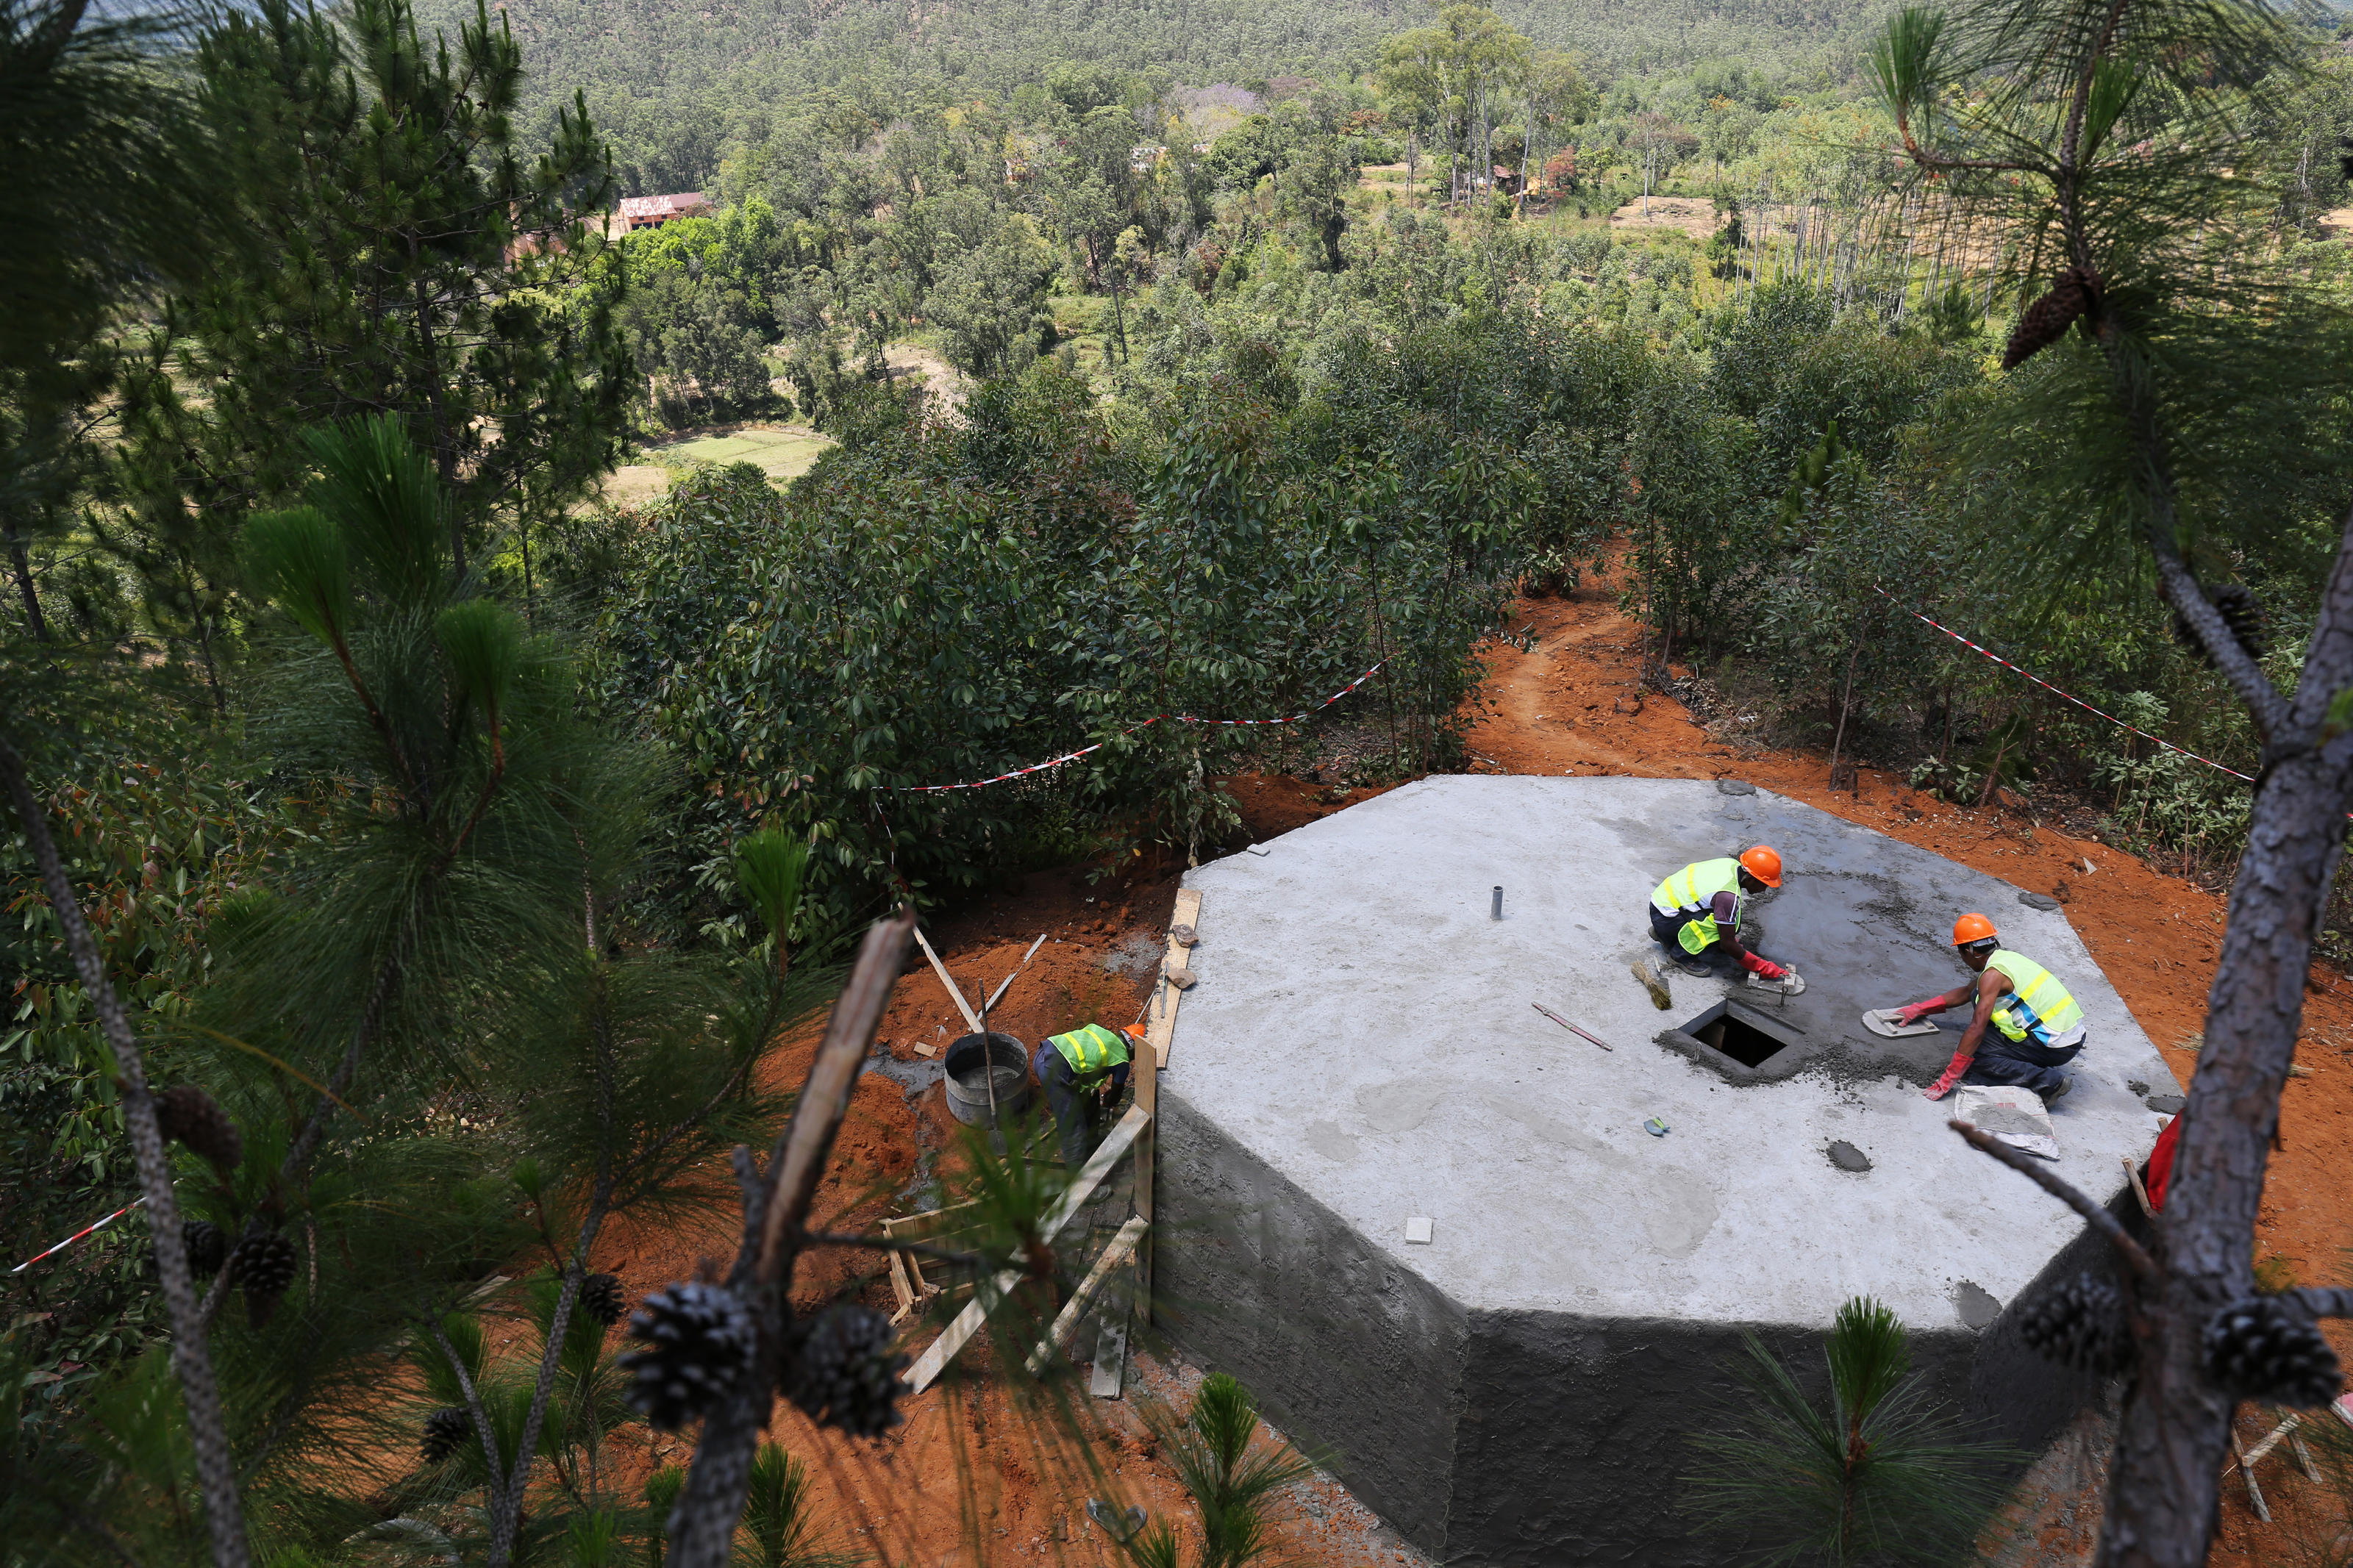 Further up, masons working at the 45 cubic meter water tank in Tsarafangitra Village, Belavabary Commune, Moramanga District, Alaotra Mangoro Region, Madagascar. October 2017.